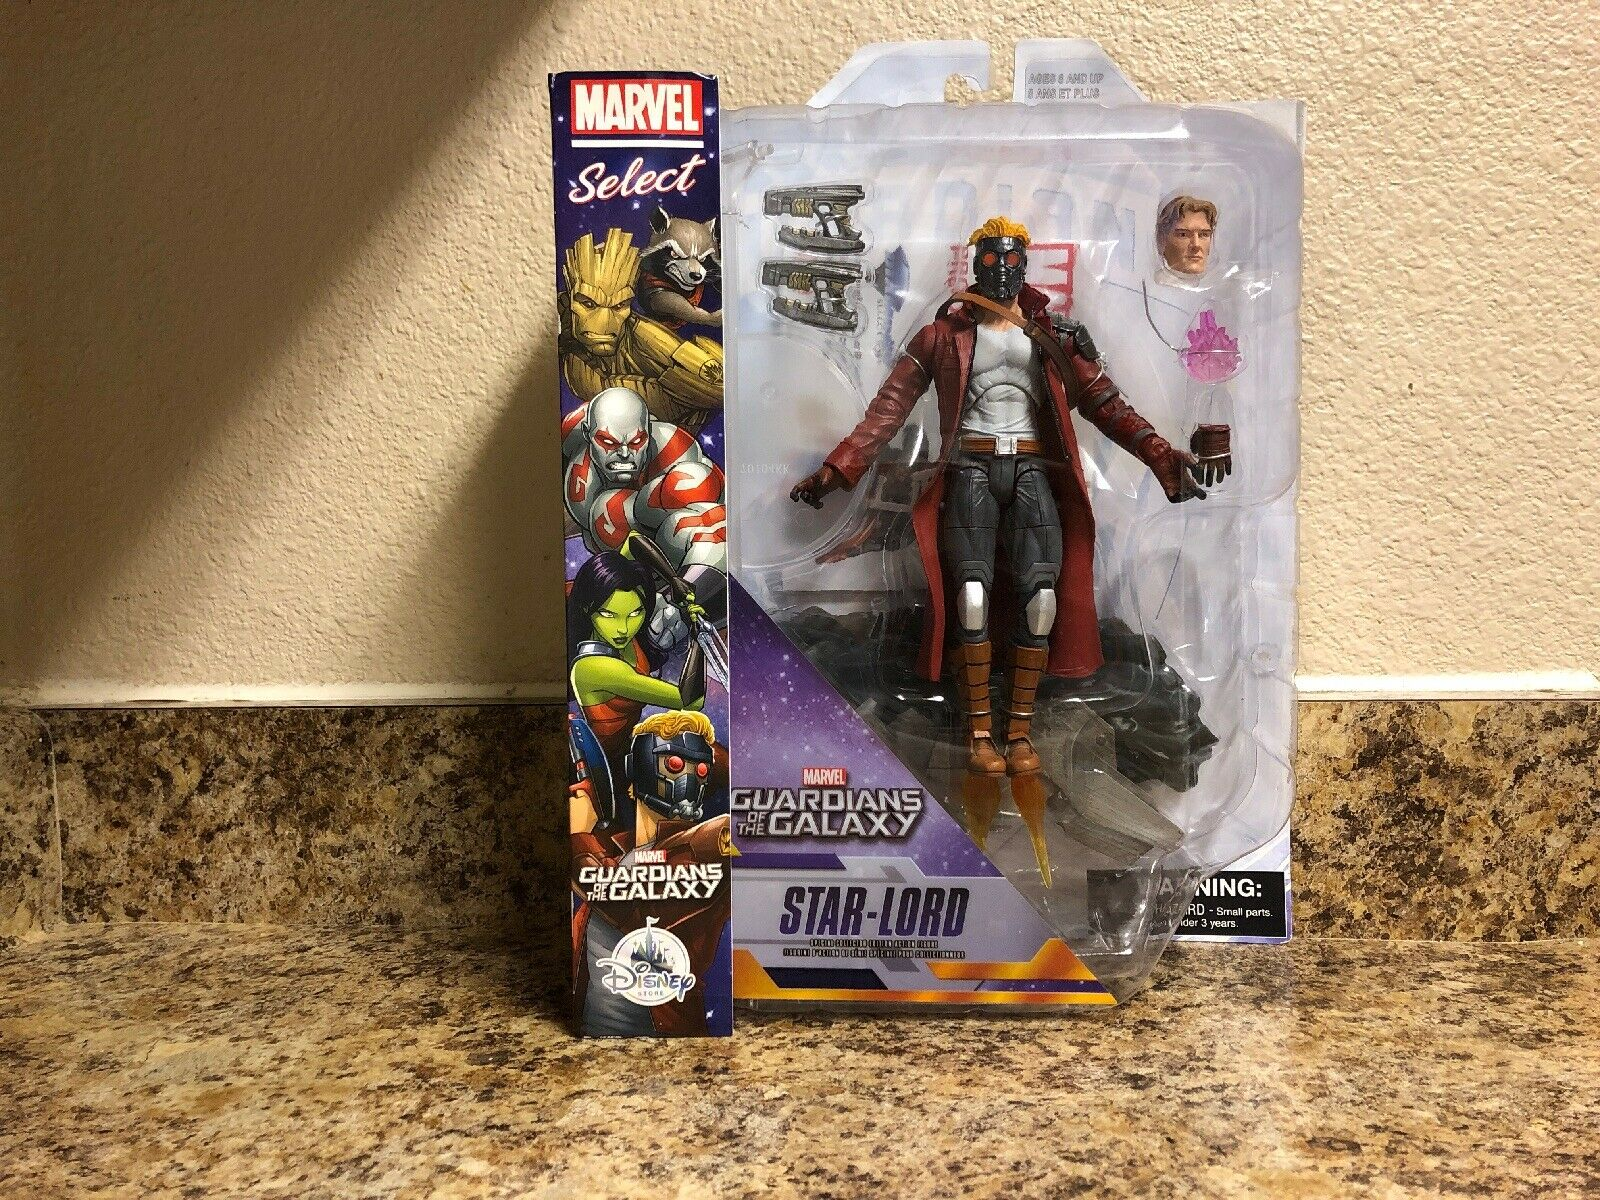 Marvel Select estrella Lord Guardians of the Galaxy DST Diamond MIP NIP